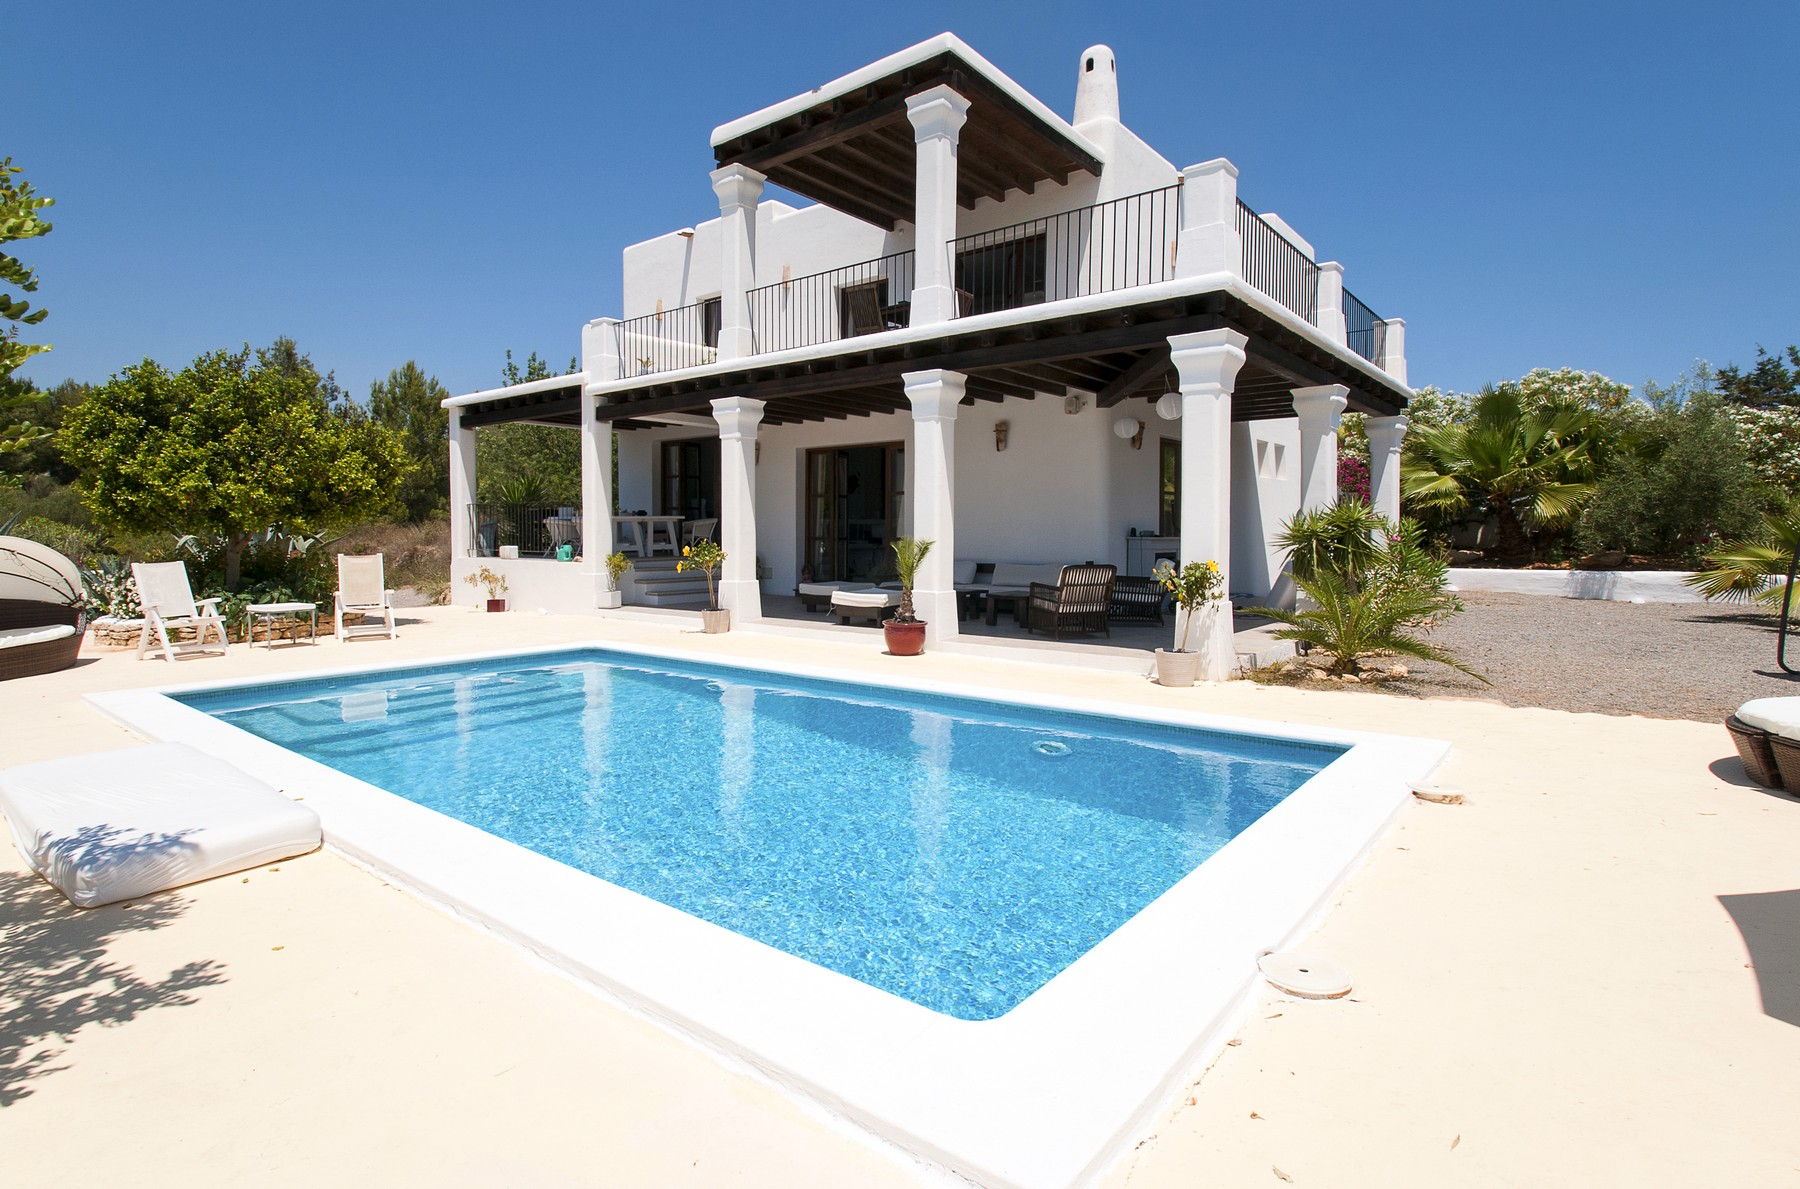 New Build South Orientated Rustic Villa In Ibiza